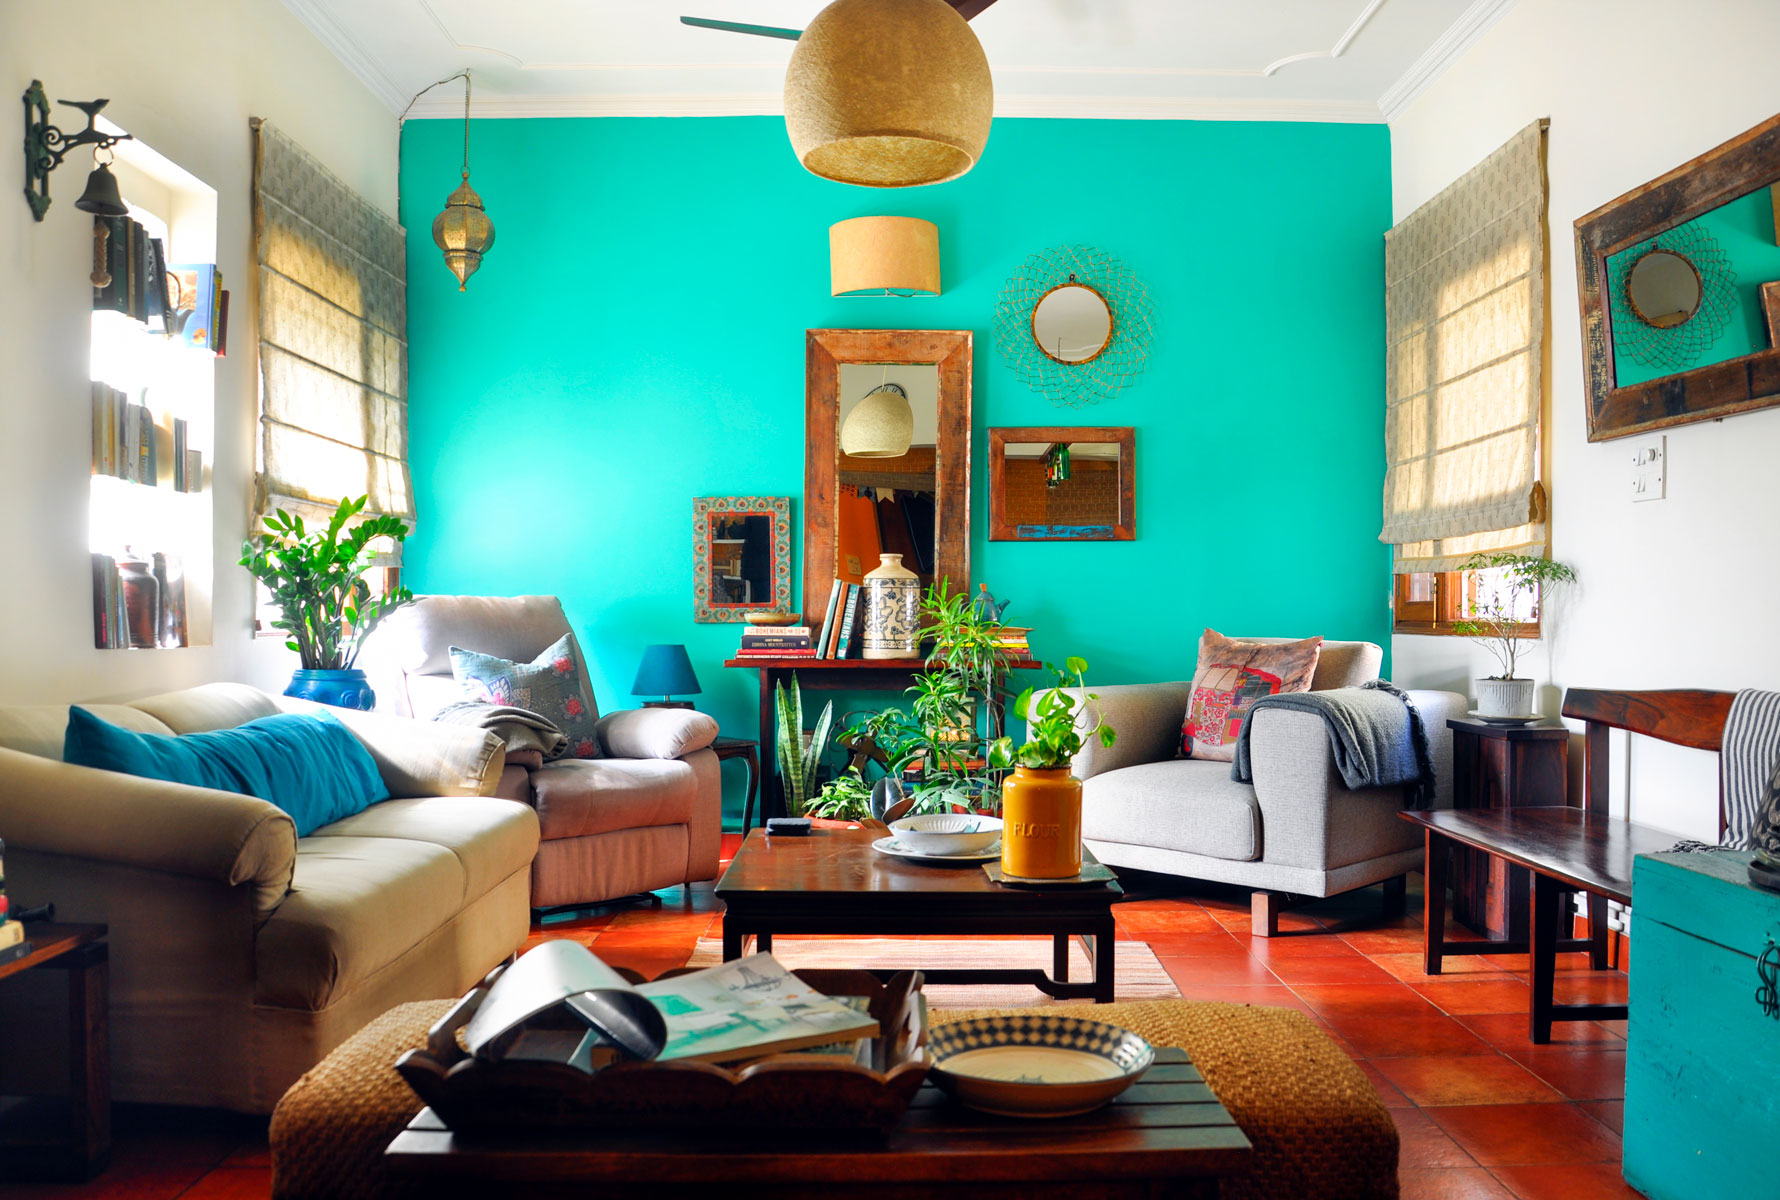 How To Decorate Your Small House Part 2 The Smart Way